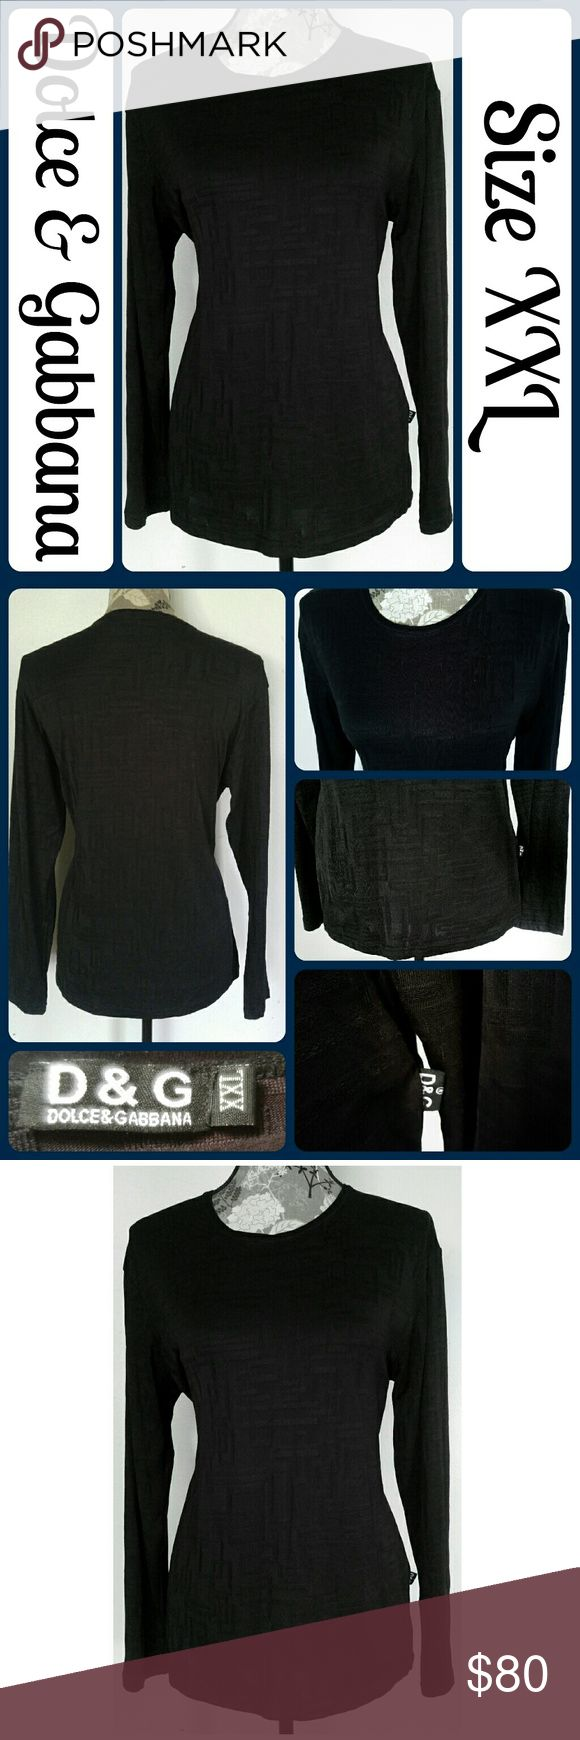 """Sz XXL Dolce & Gabbana Black Top So cute and perfect dressed up or down! Excellent condition, worn once! 95% Viscon, 5% Lycra, Across Bust 22"""", Length 26"""" from center back, Sleeve from armpit to end 19"""" No rips, tears, or stains.... From a smoke-free, dog friendly home, No trades and no off-site transactions! (T165) Dolce & Gabbana Tops Tees - Long Sleeve"""